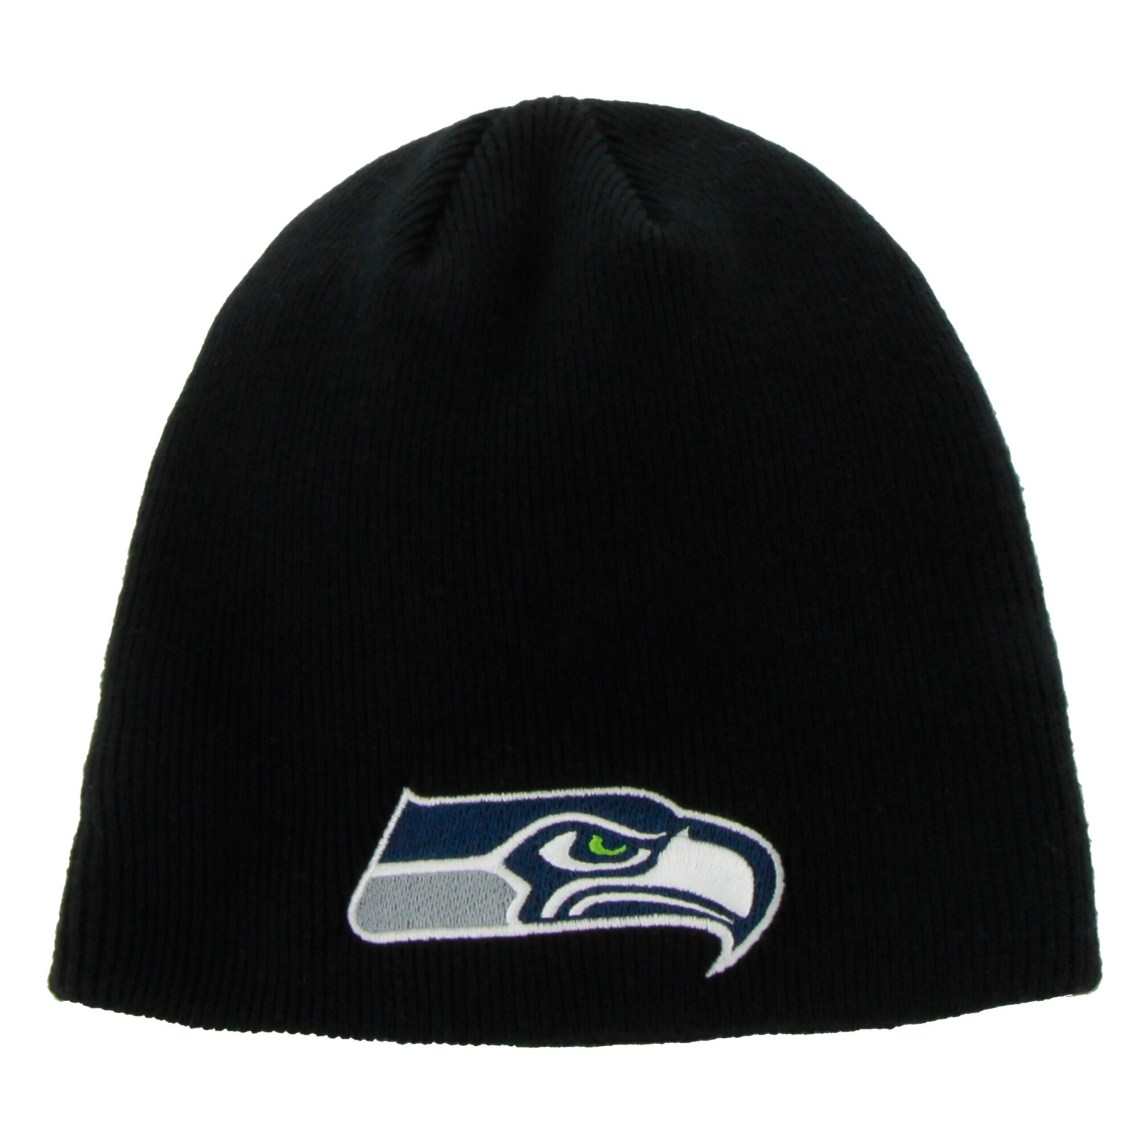 '47 Brand Seattle Seahawks Logo Cuffless Beanie - Black